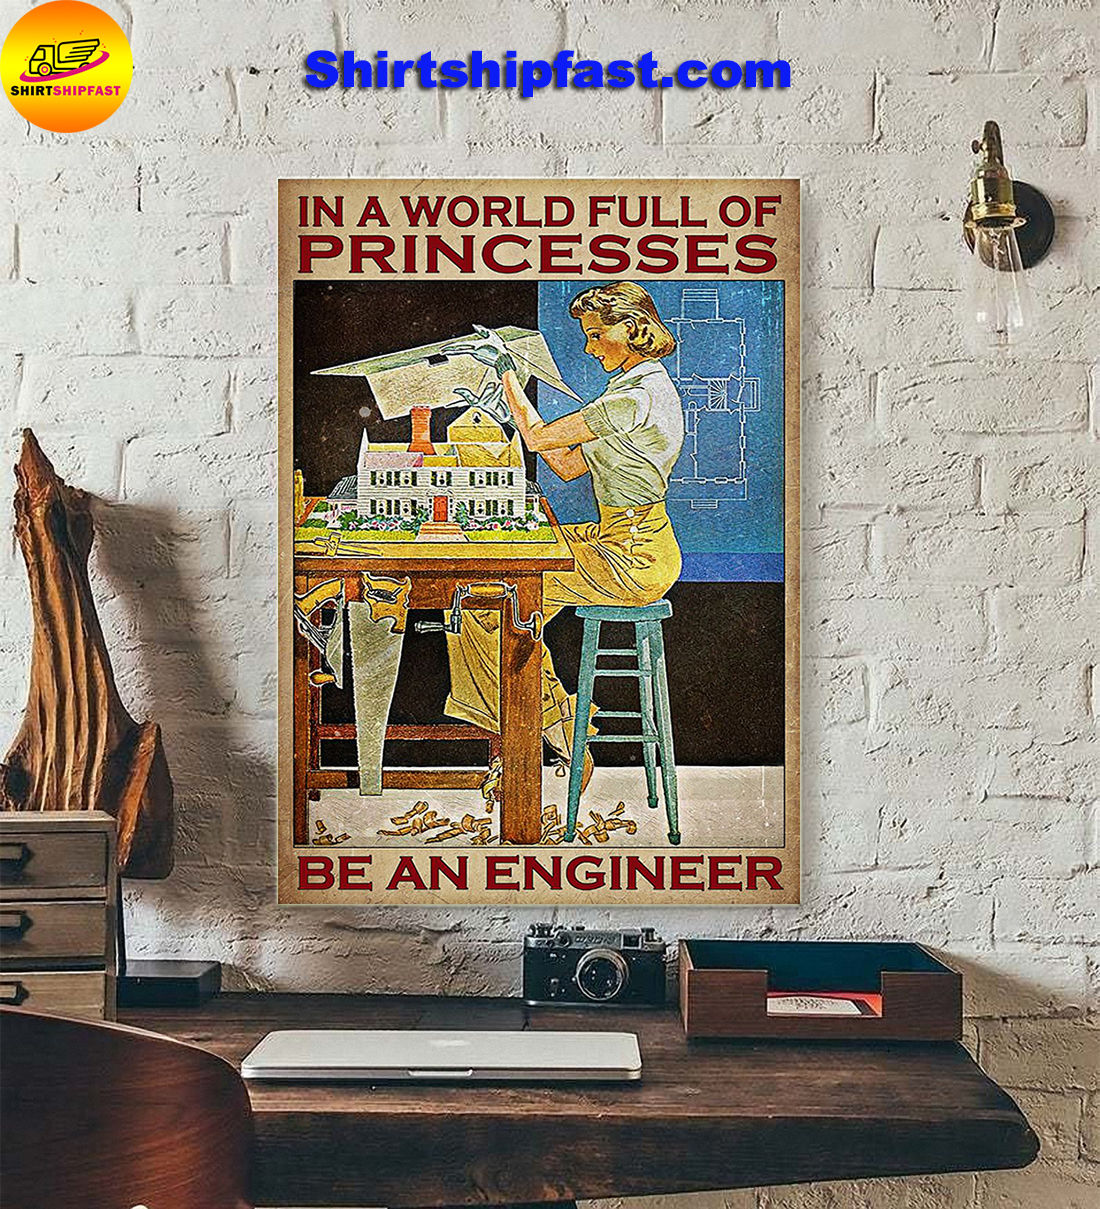 Girl In a world full of princesses be an engineer poster - Picture 1